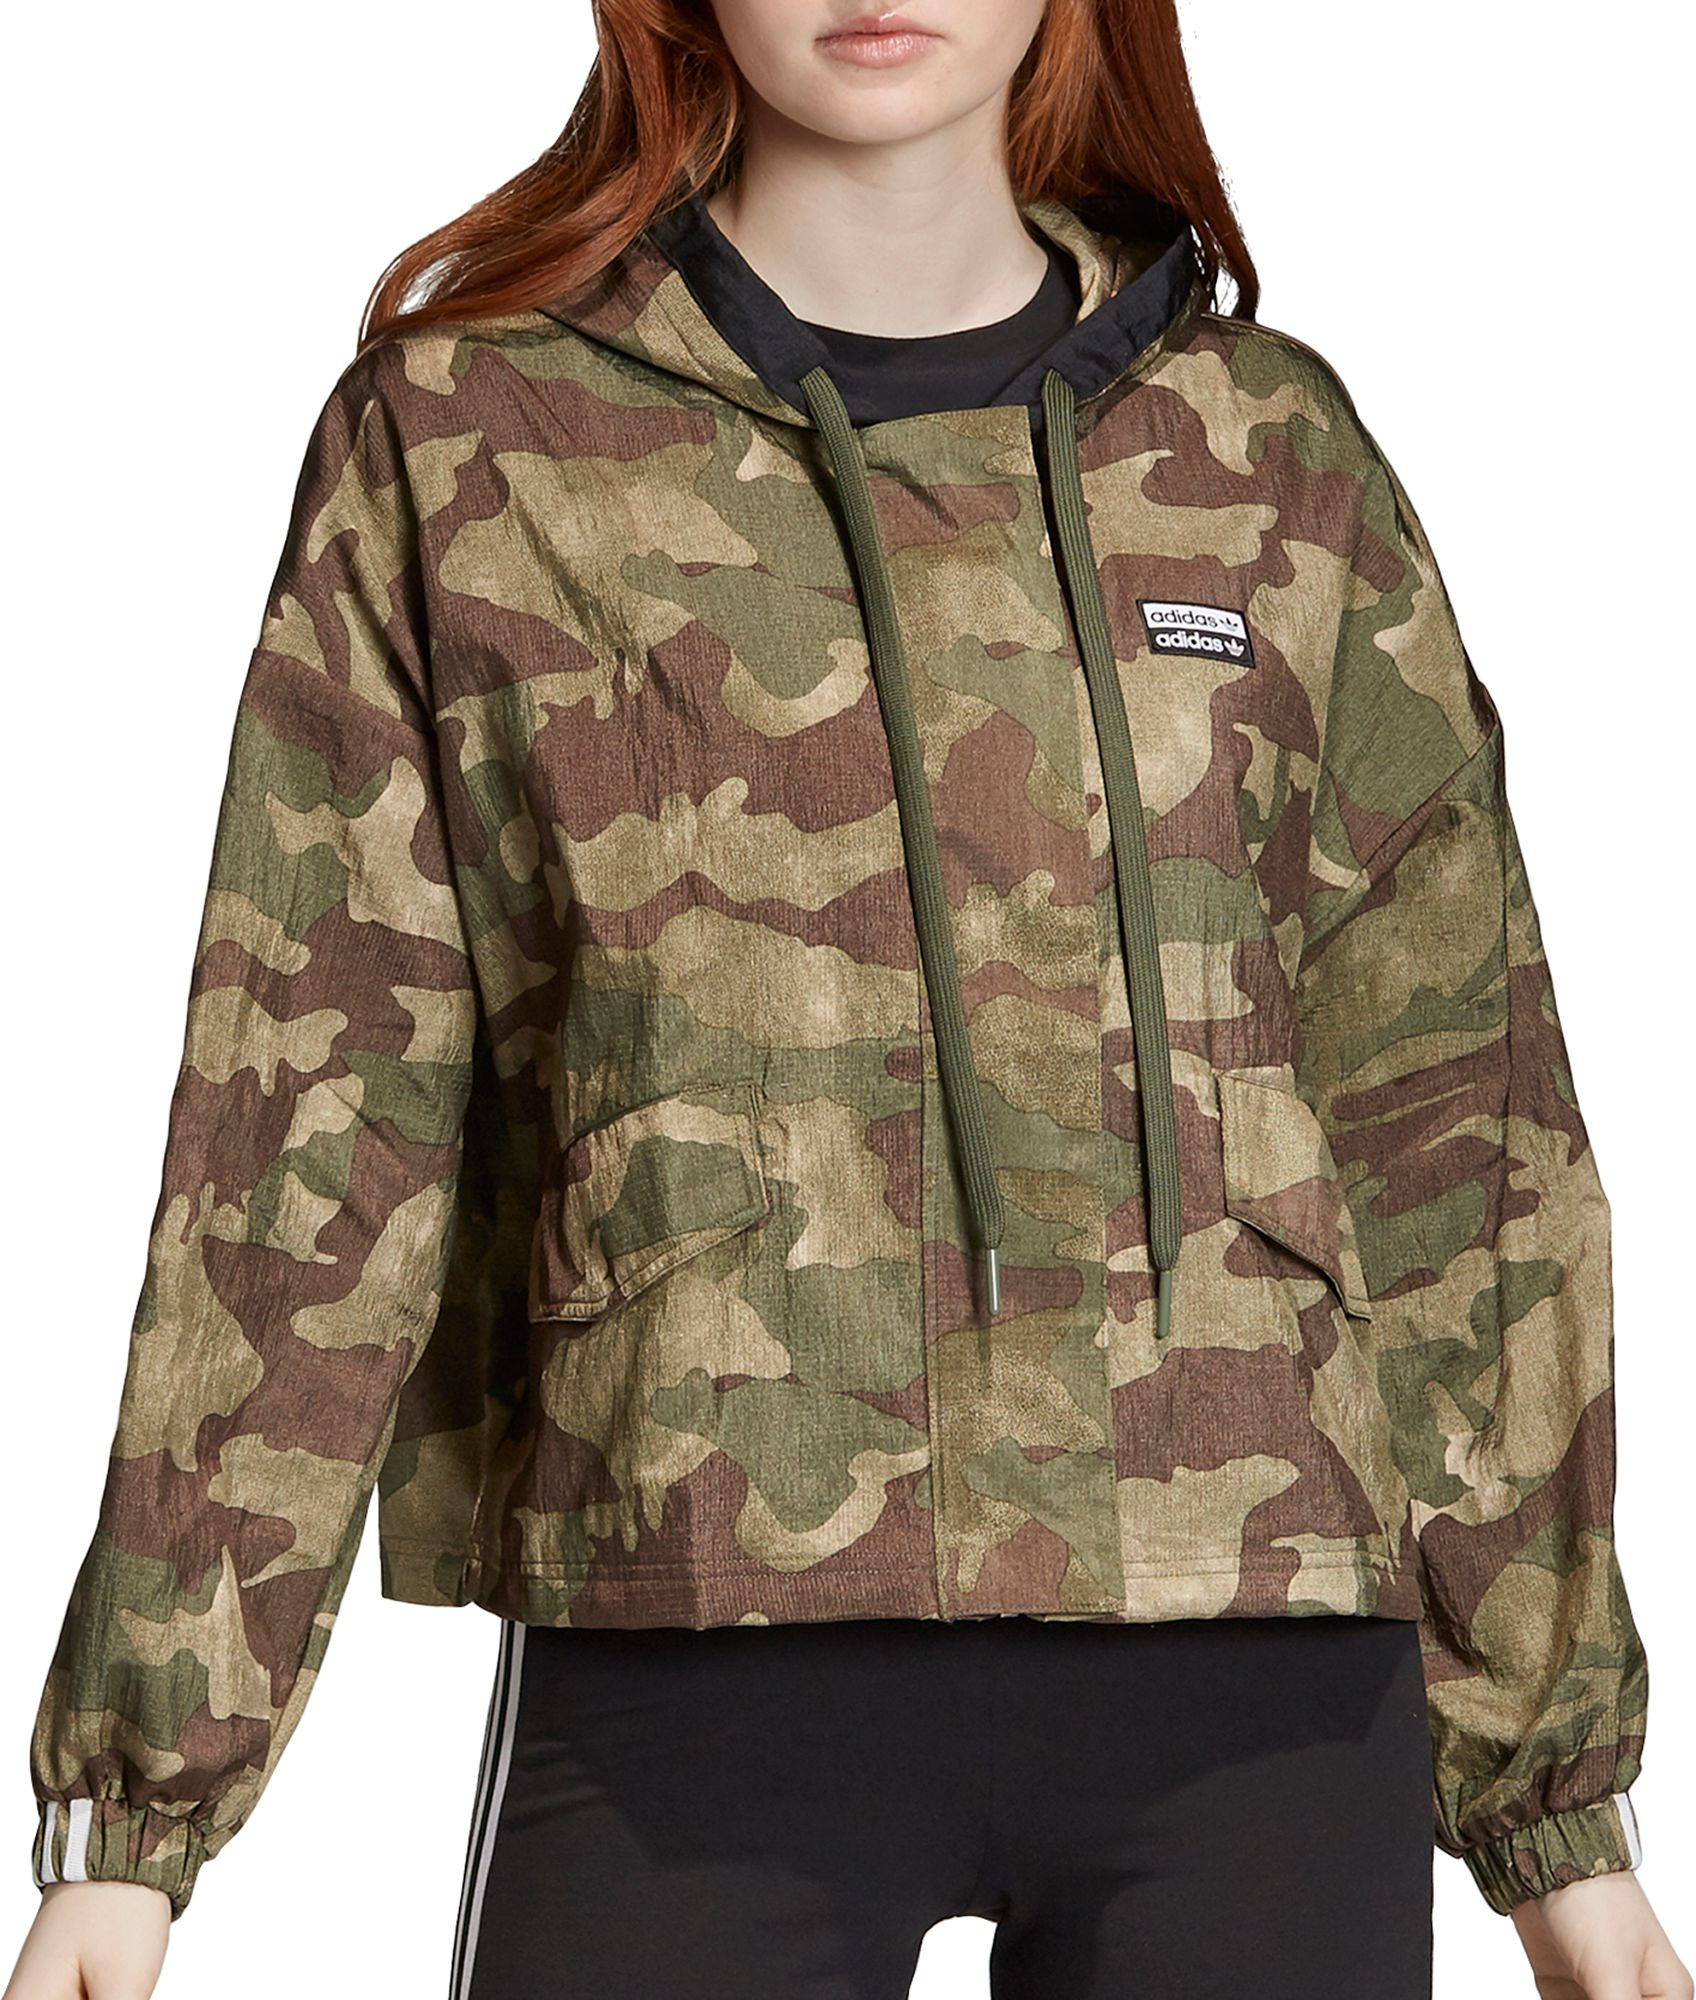 adidas Originals Women's Vocal Camo Windbreaker Jacket, Size: XS, Green thumbnail